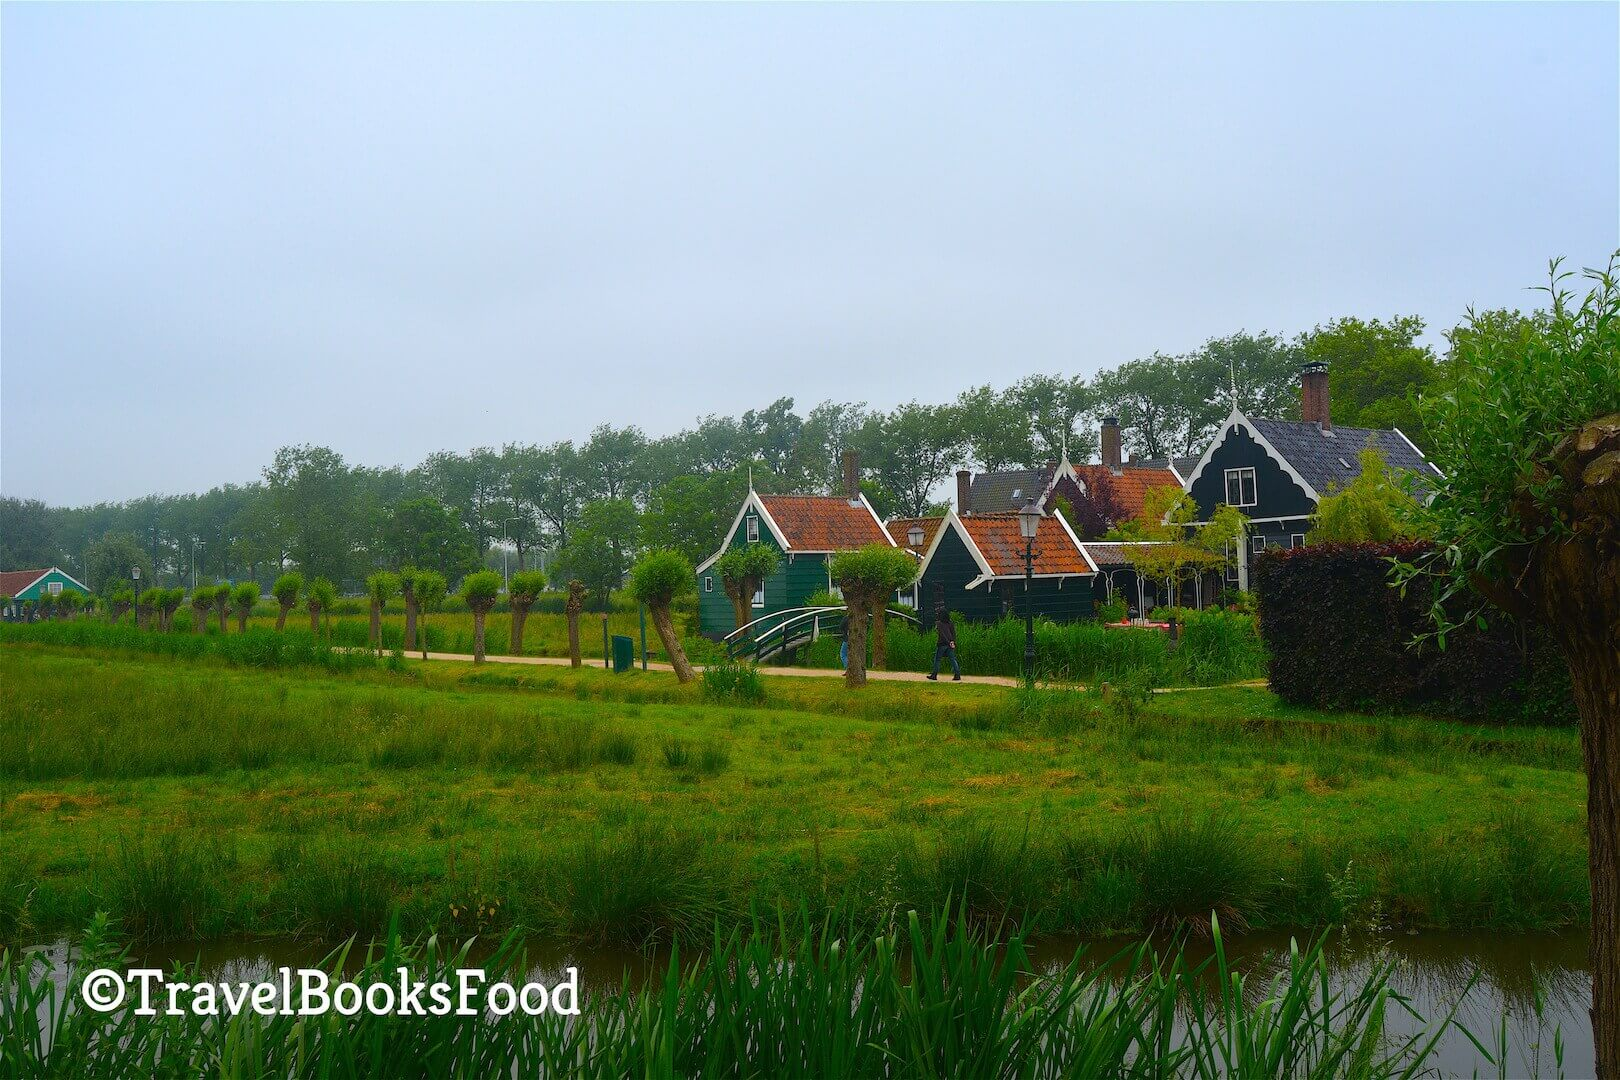 Photo of Fishing Village in Amsterdam. There are lots of green houses surrounded by too much greenery